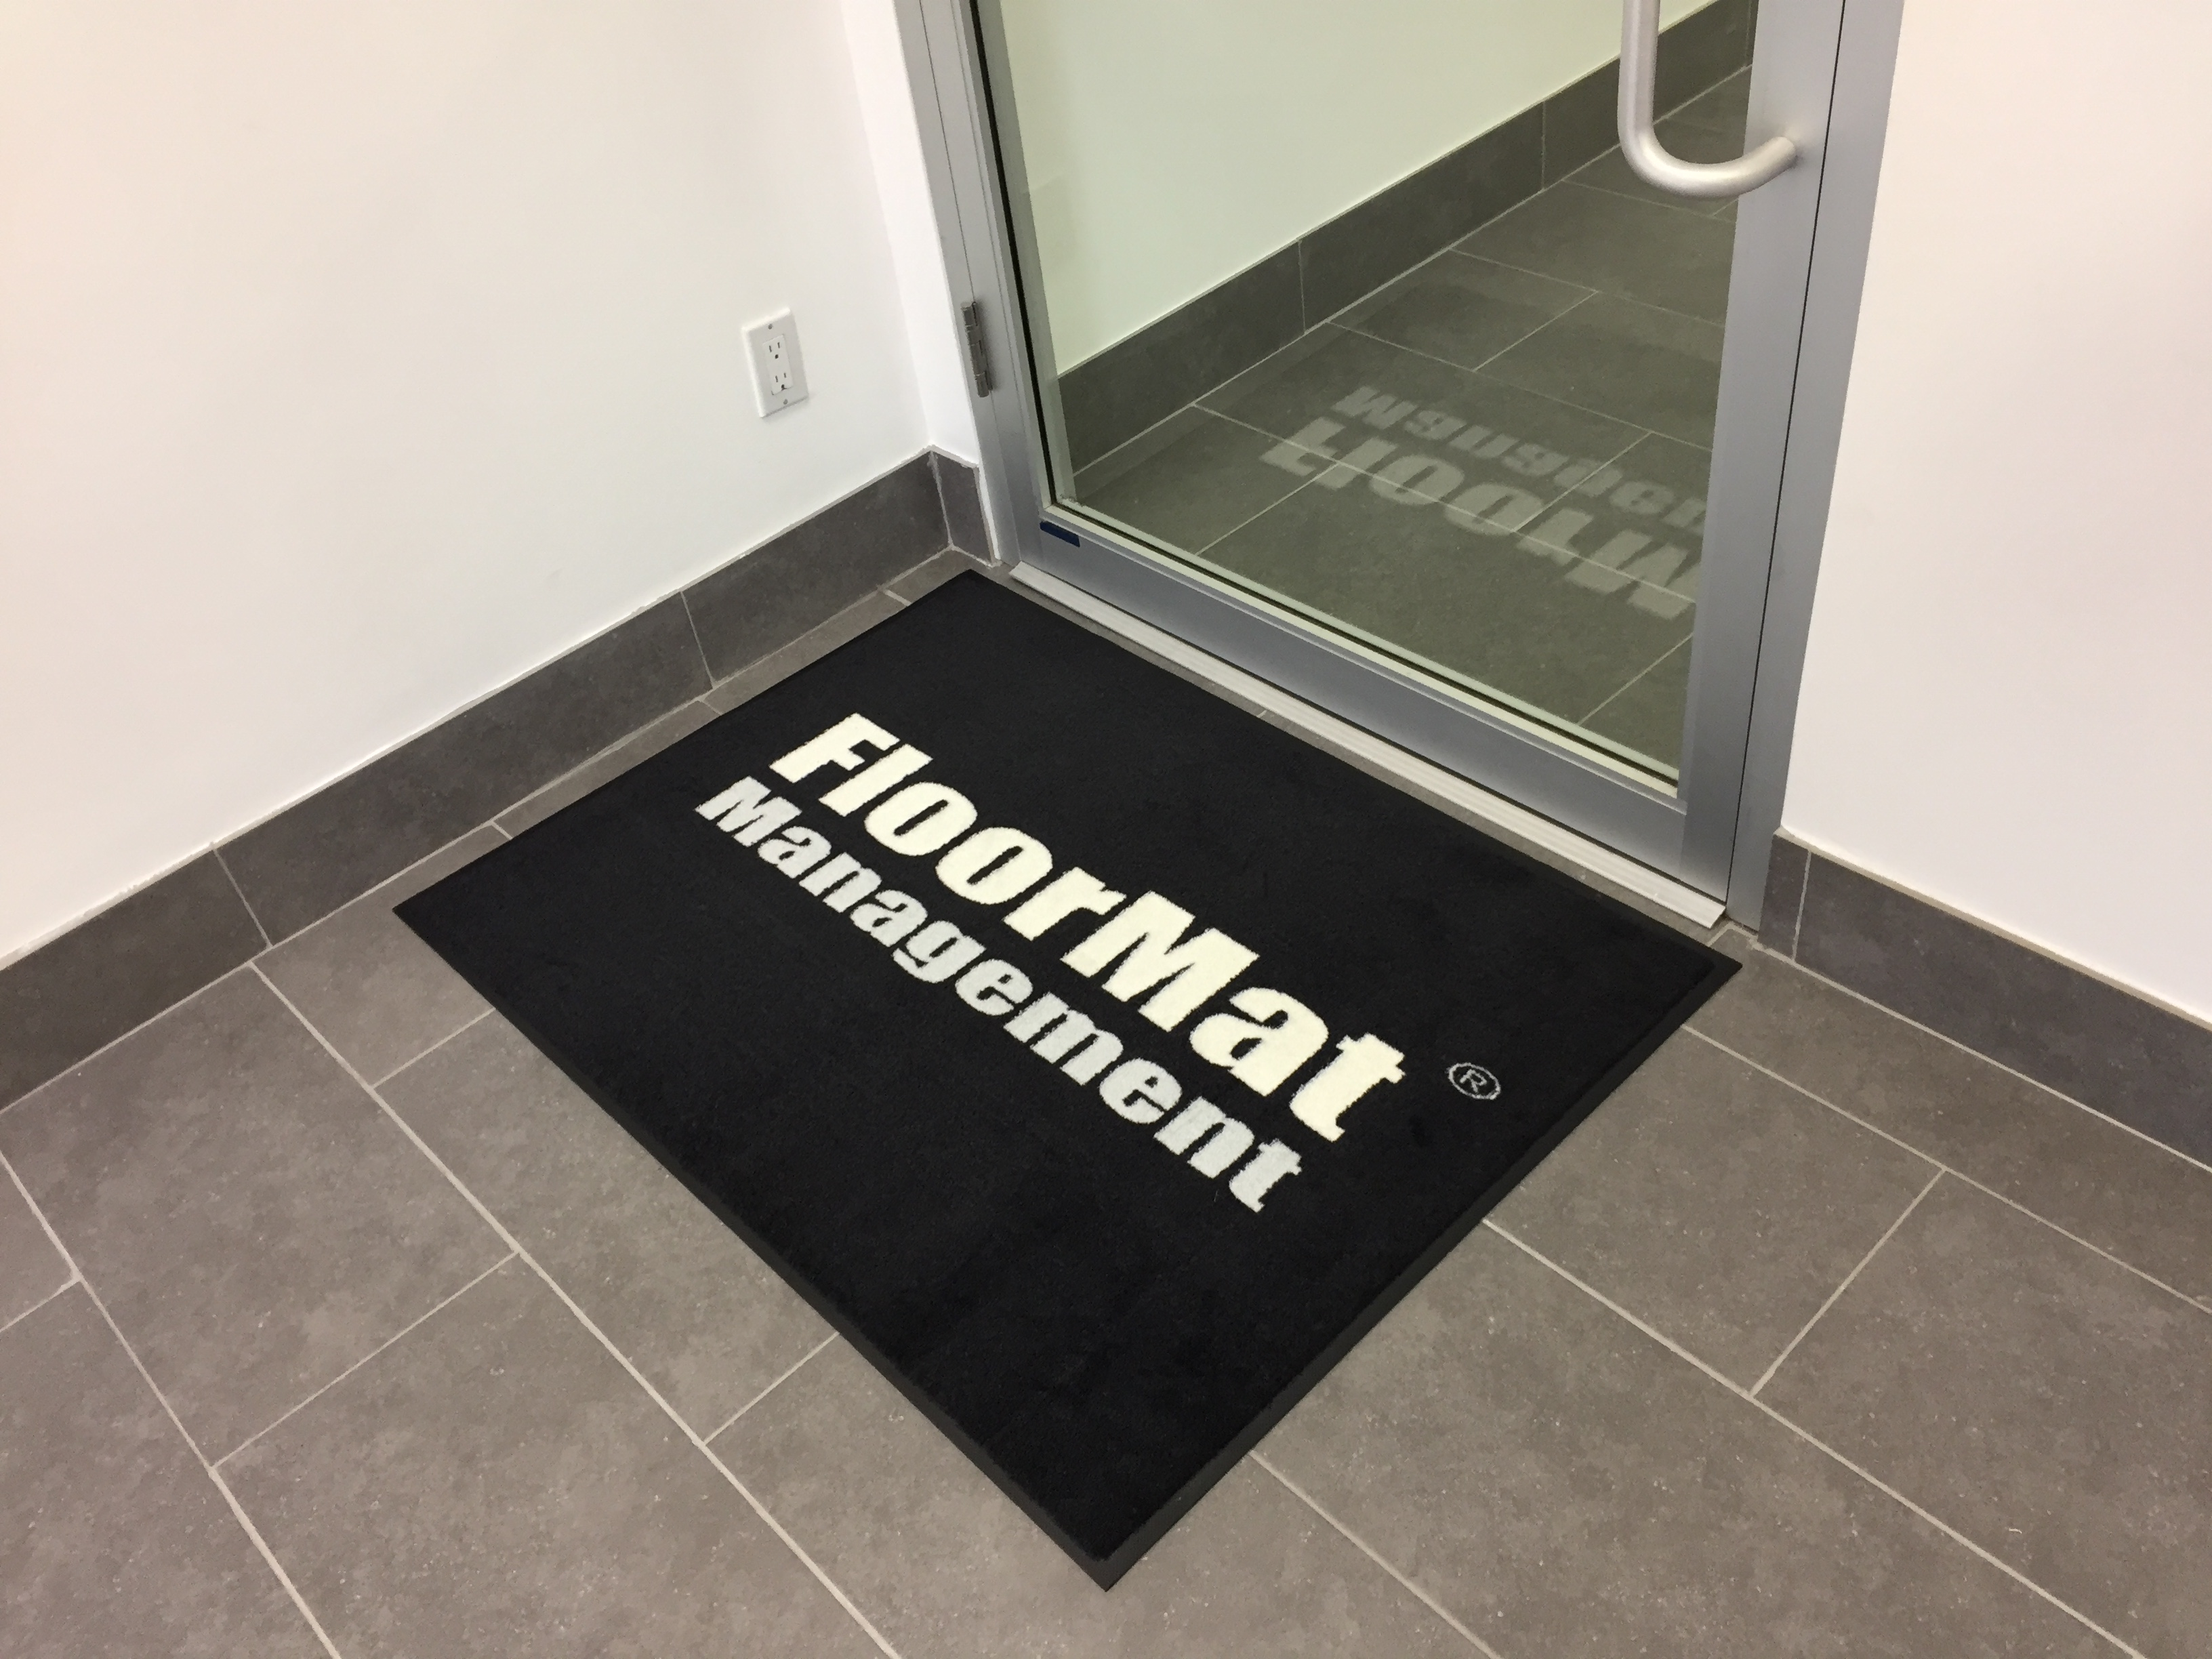 Product Safety And Quality Are Also Essential; Our Floor Mats Are Certified  As U201cHIGH TRACTIONu201d By The National Floor Safety Institute (NFSI).